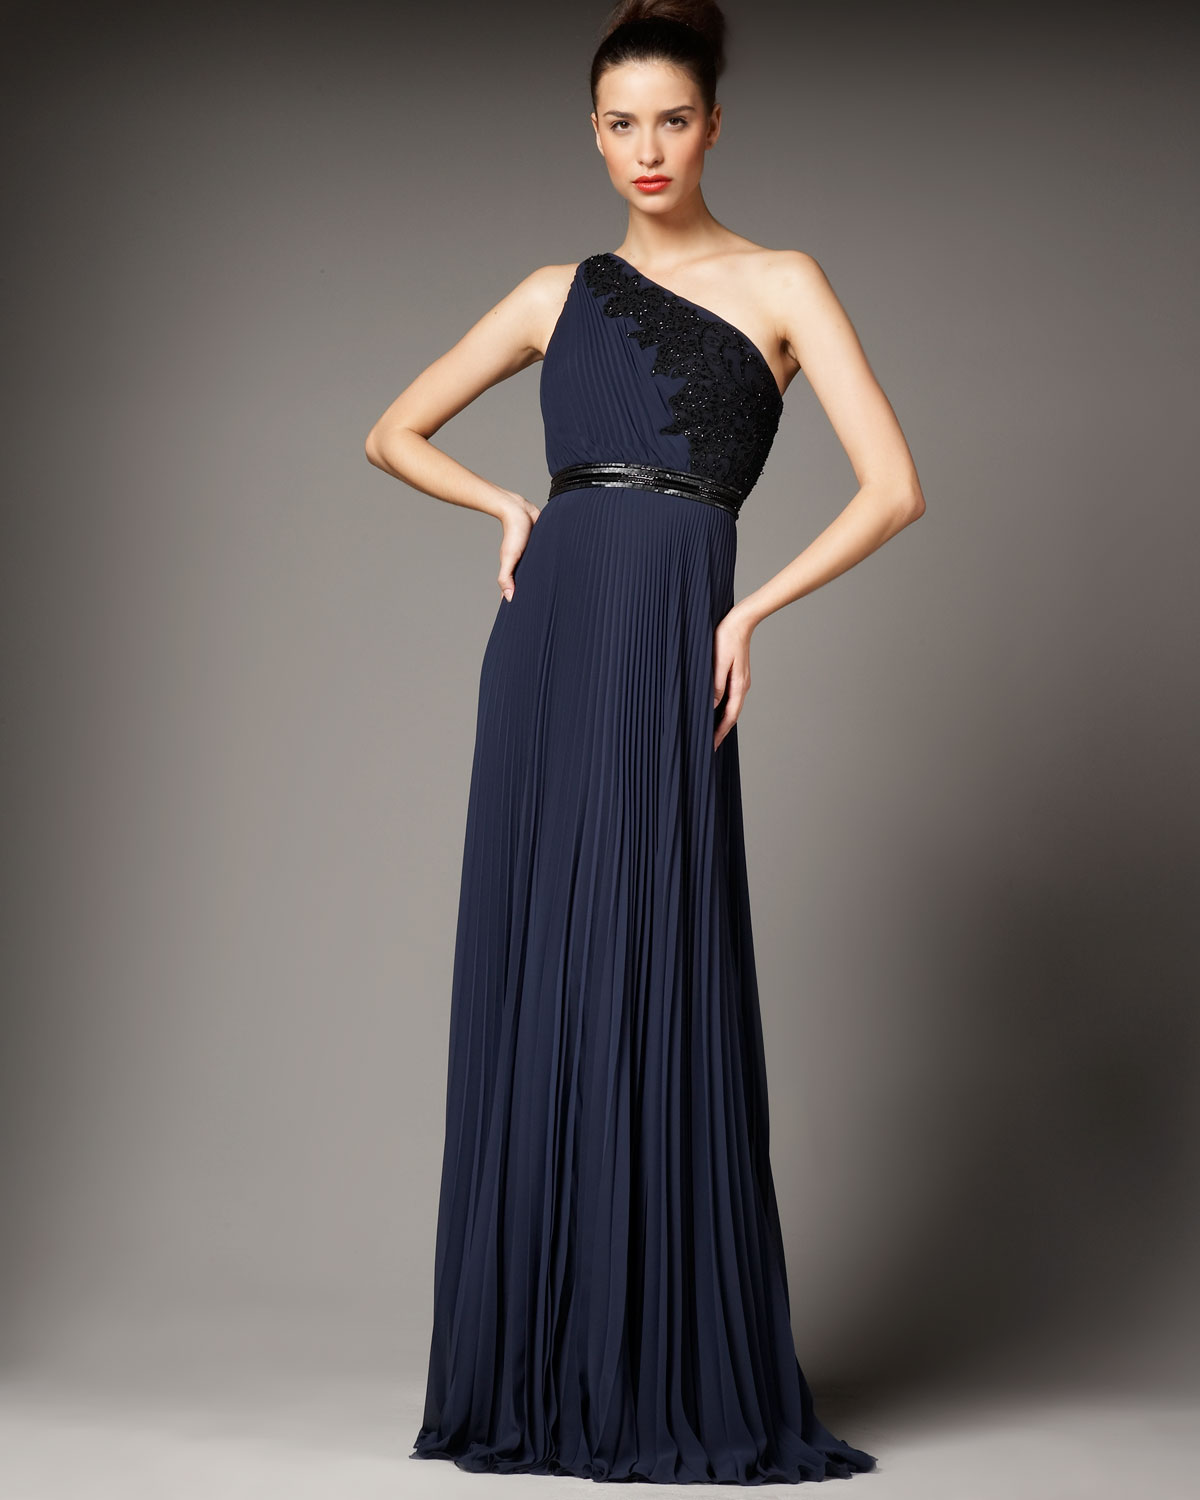 Lyst - Carmen Marc Valvo One-shoulder Lace-detail Gown in Blue